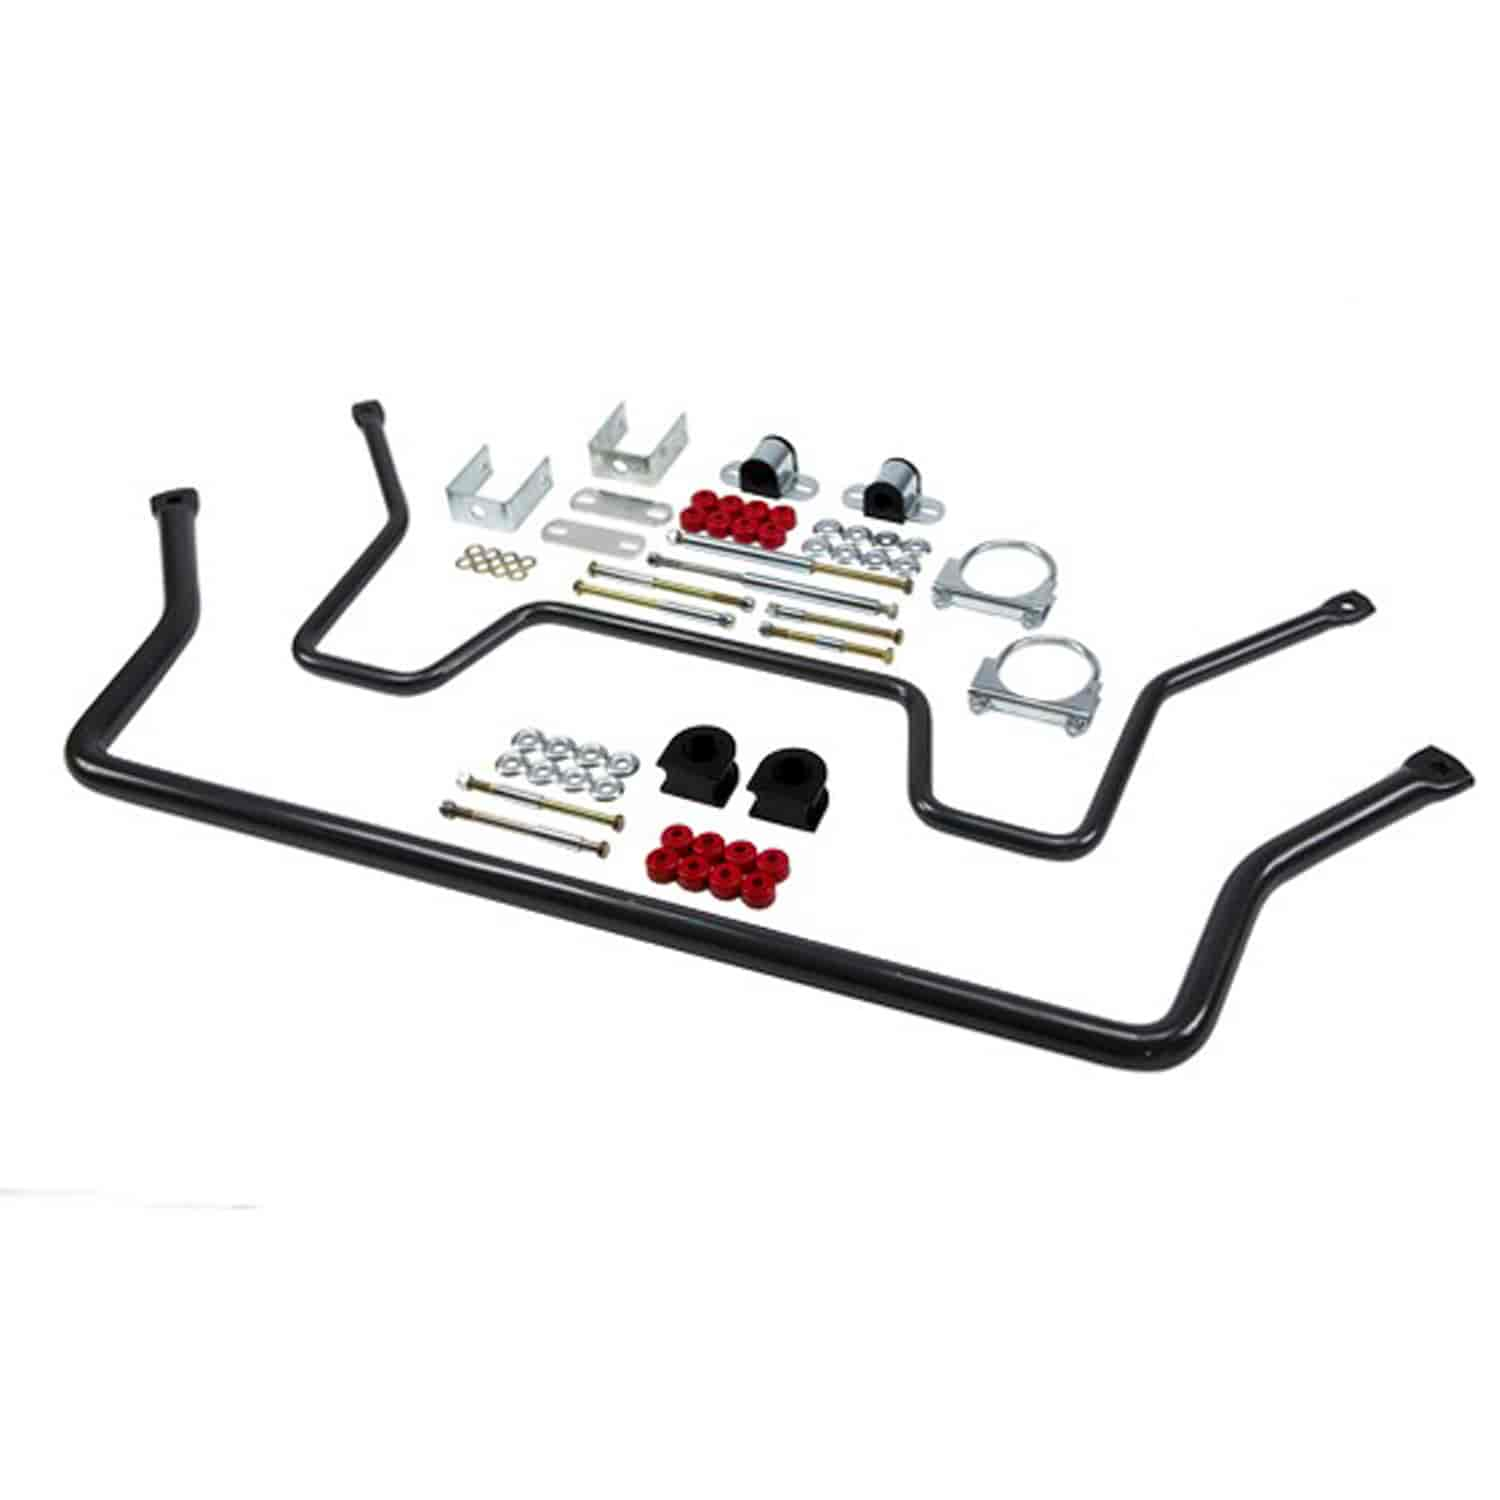 Belltech Front Rear Sway Bar Kit For Gm Astro Safari 2wd